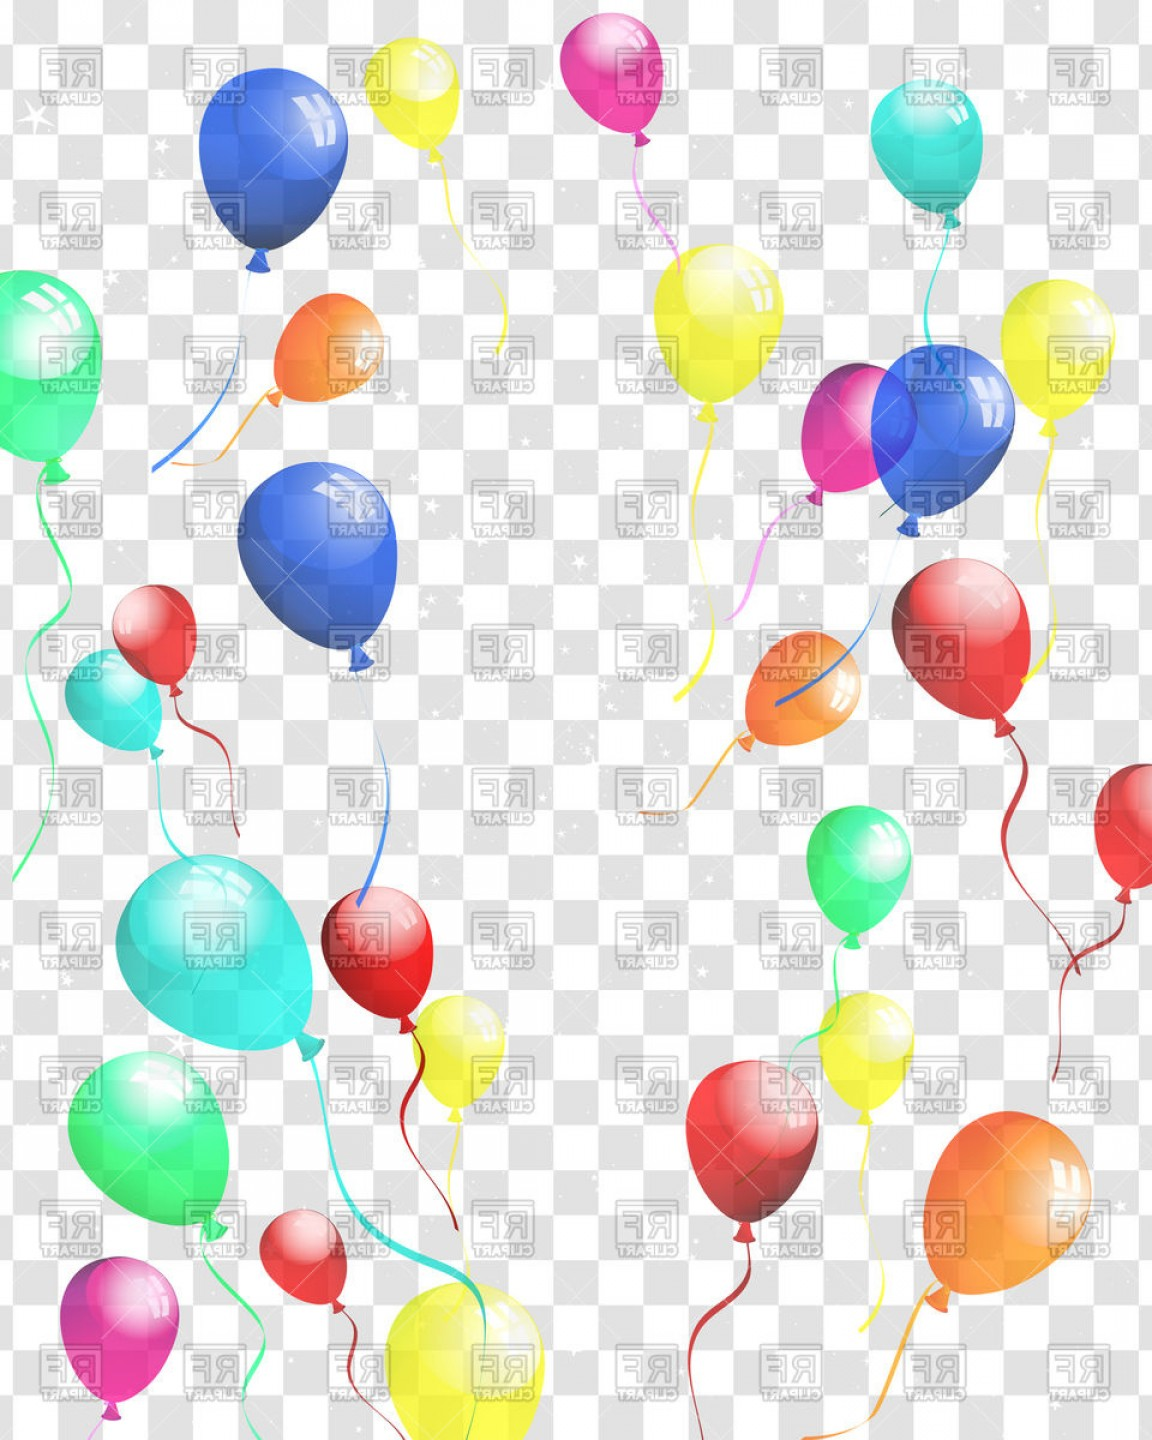 Balloon Background Cliparts Free Download Clip Art.